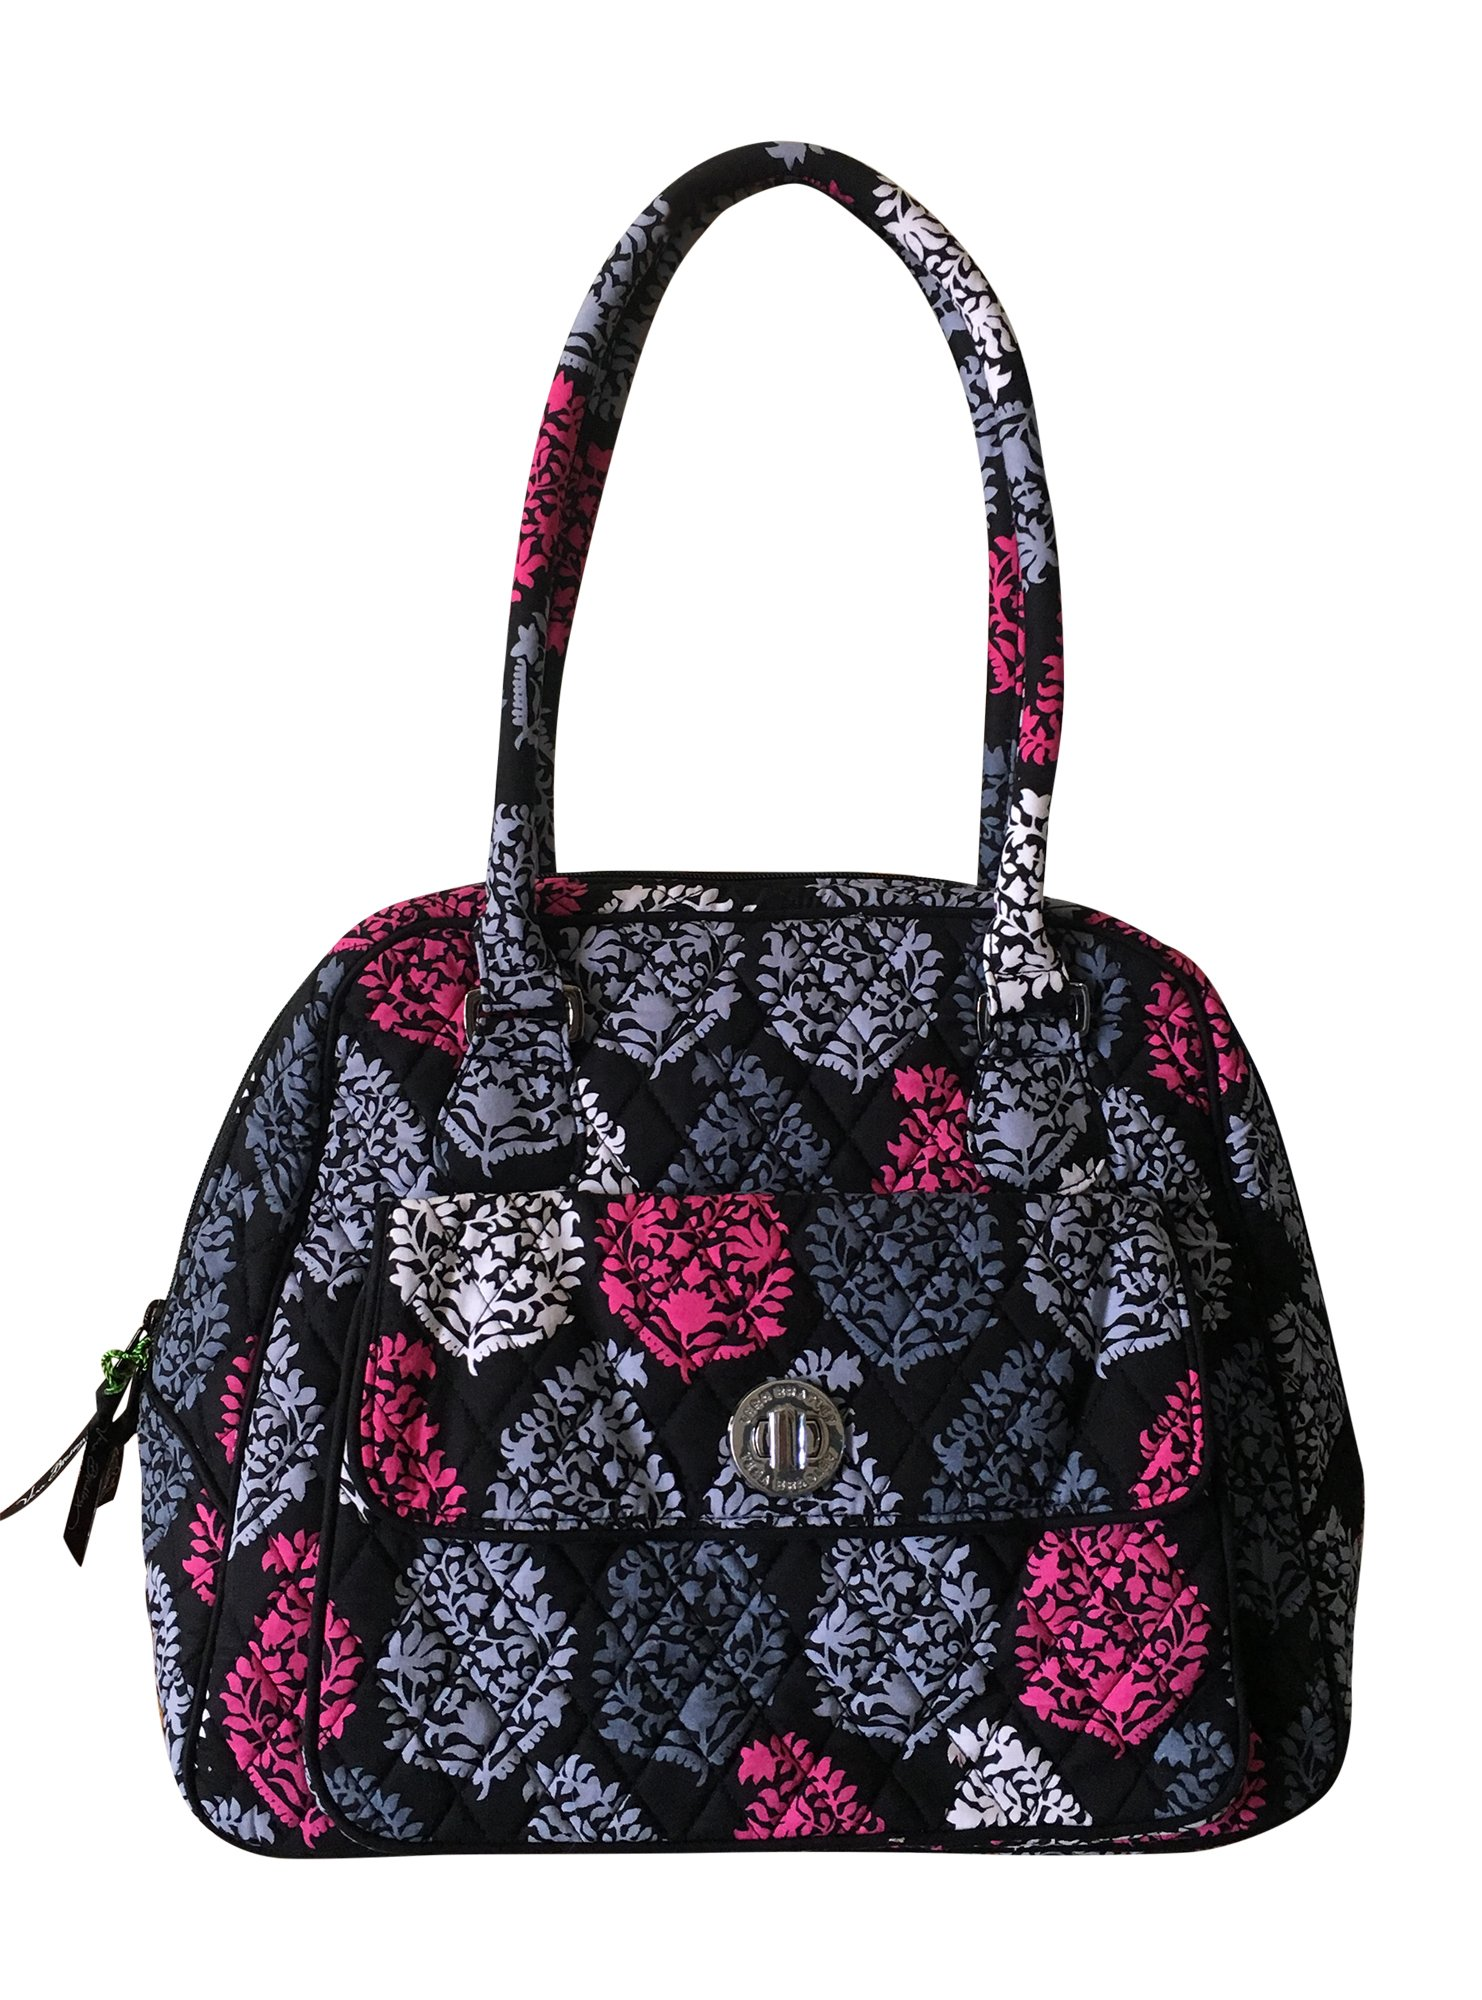 Vera Bradley Turnlock Satchel, Signature Cotton (Northern Lights)